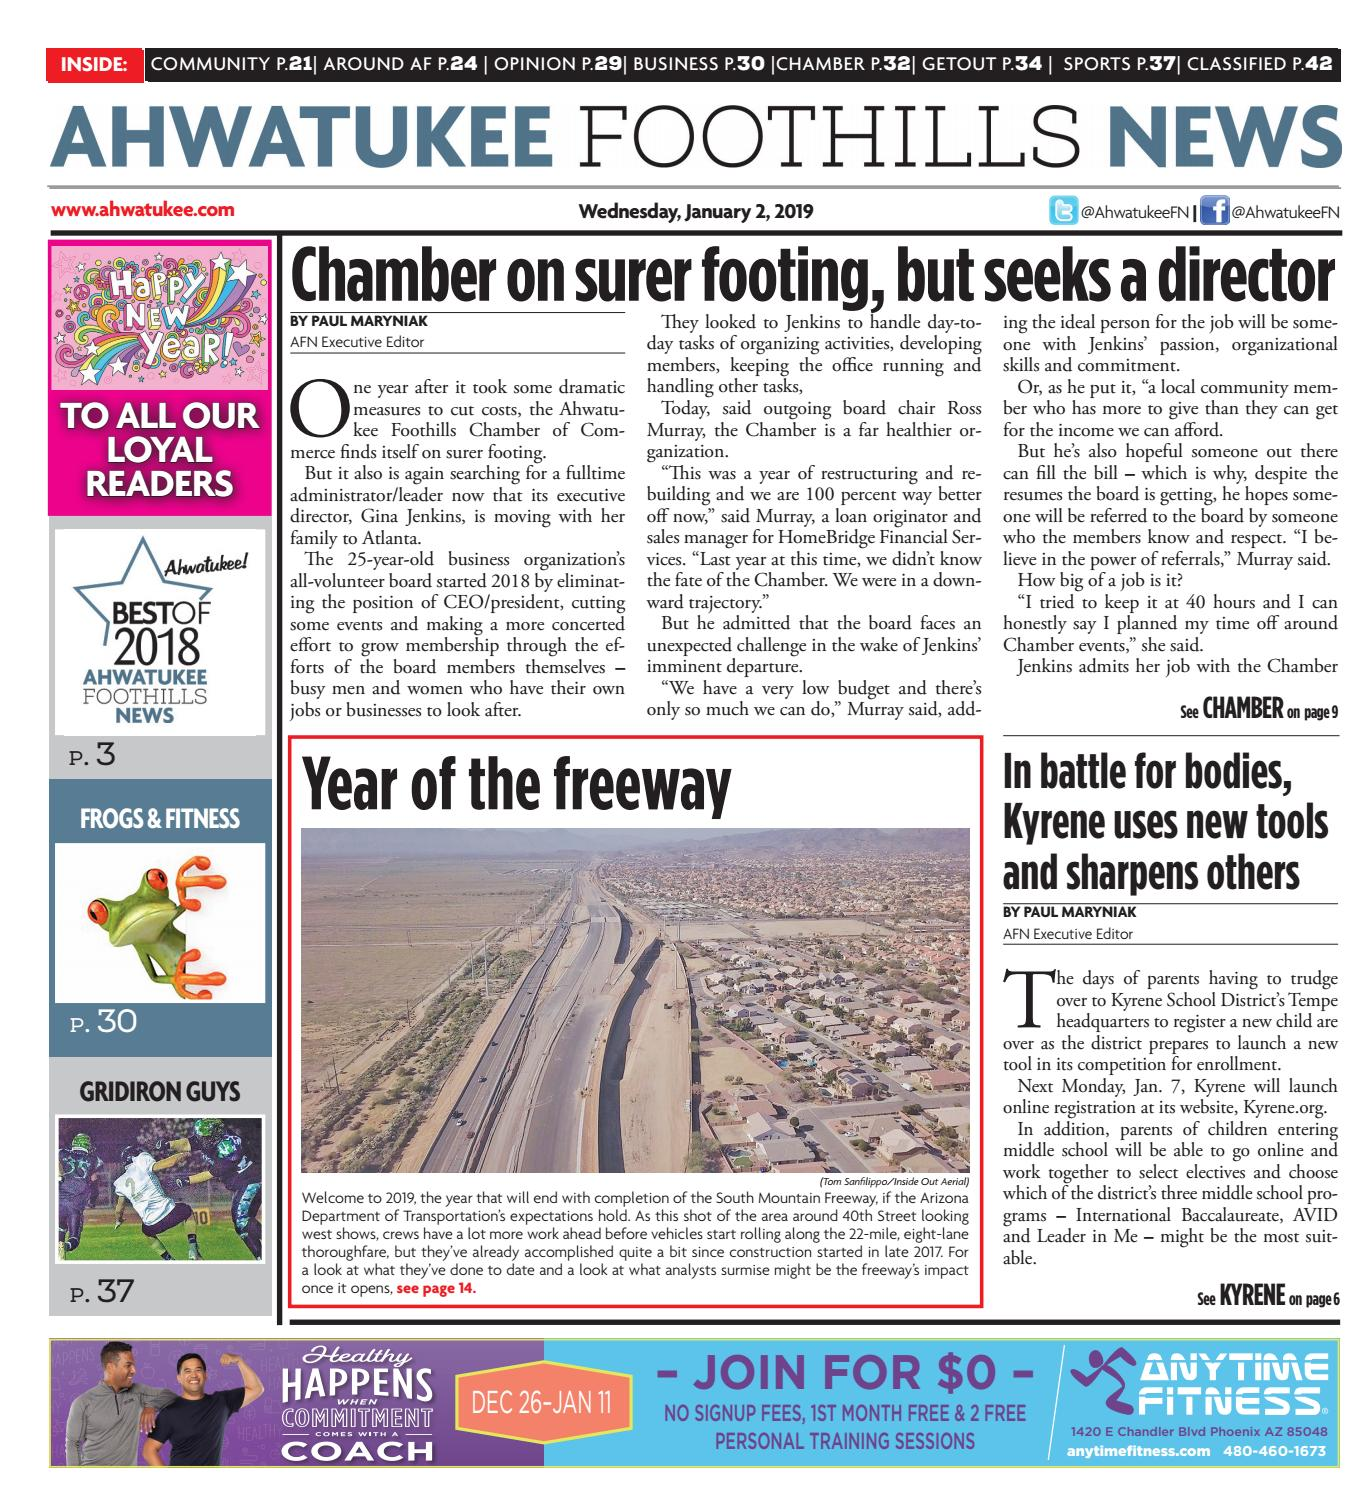 Ahwatukee Foothills News - January 2 2018 by Times Media